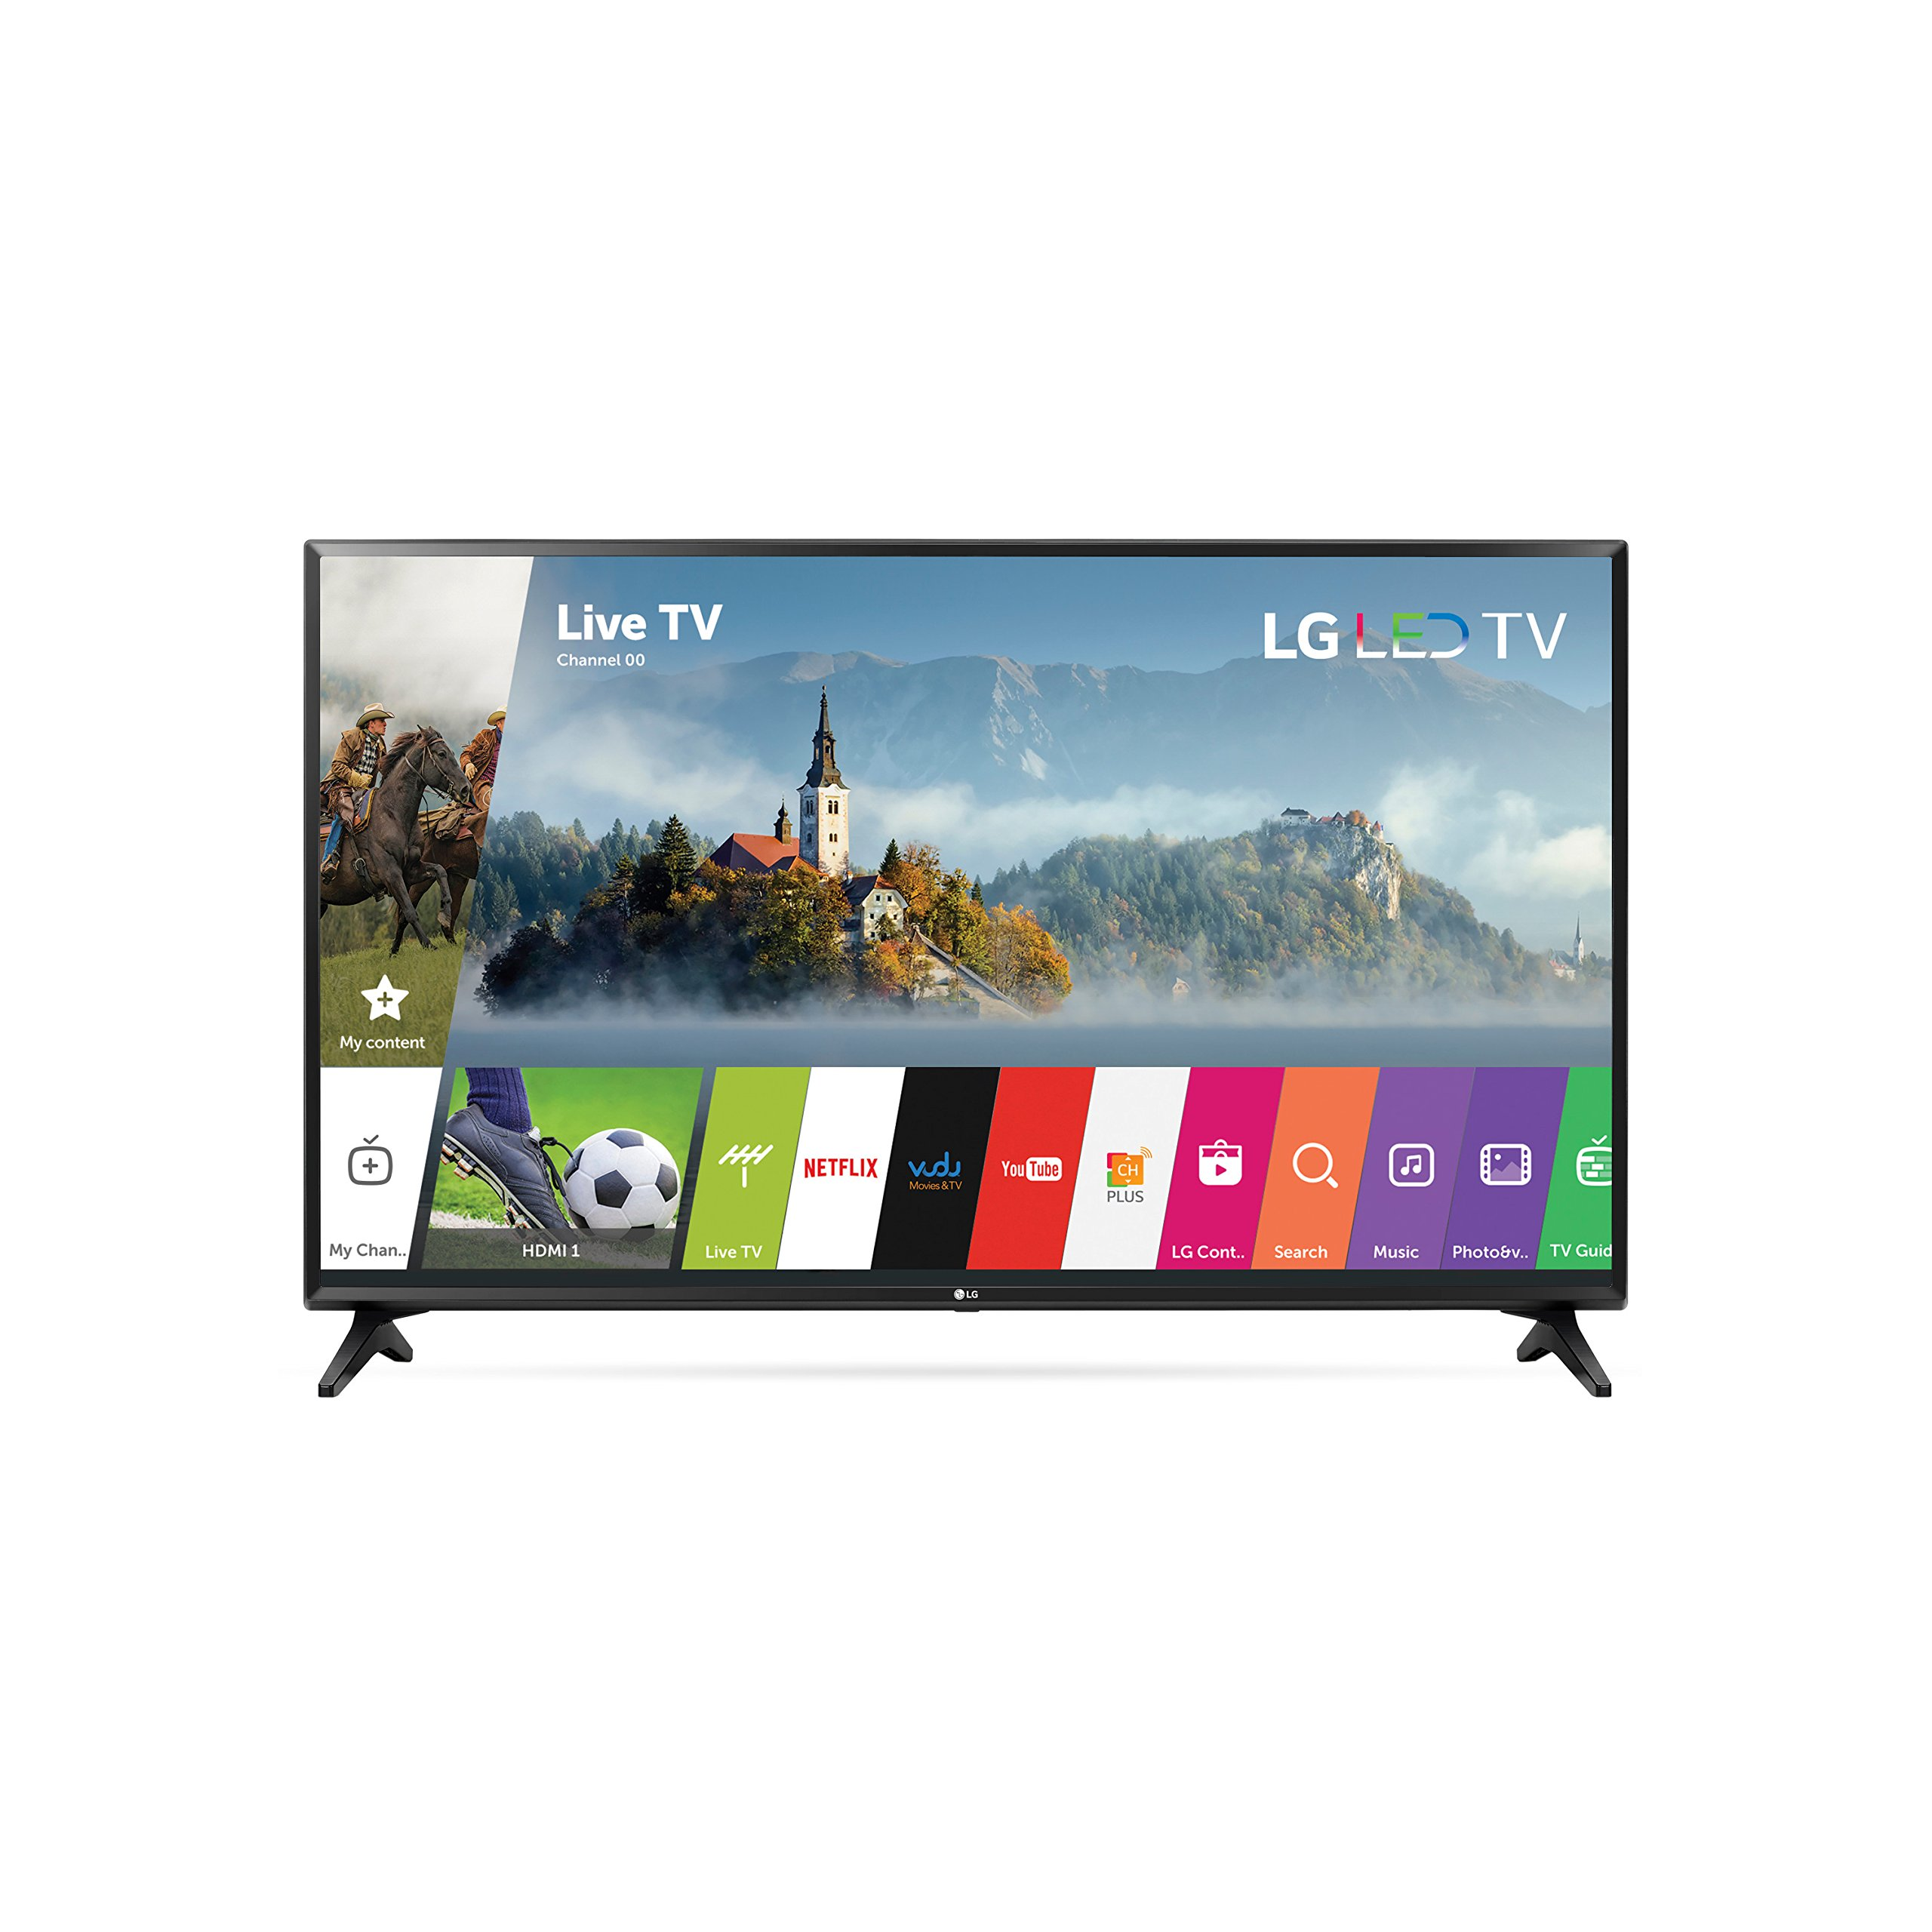 Cheap Lg 32 Inch Led Smart Tv Find Lg 32 Inch Led Smart Tv Deals On